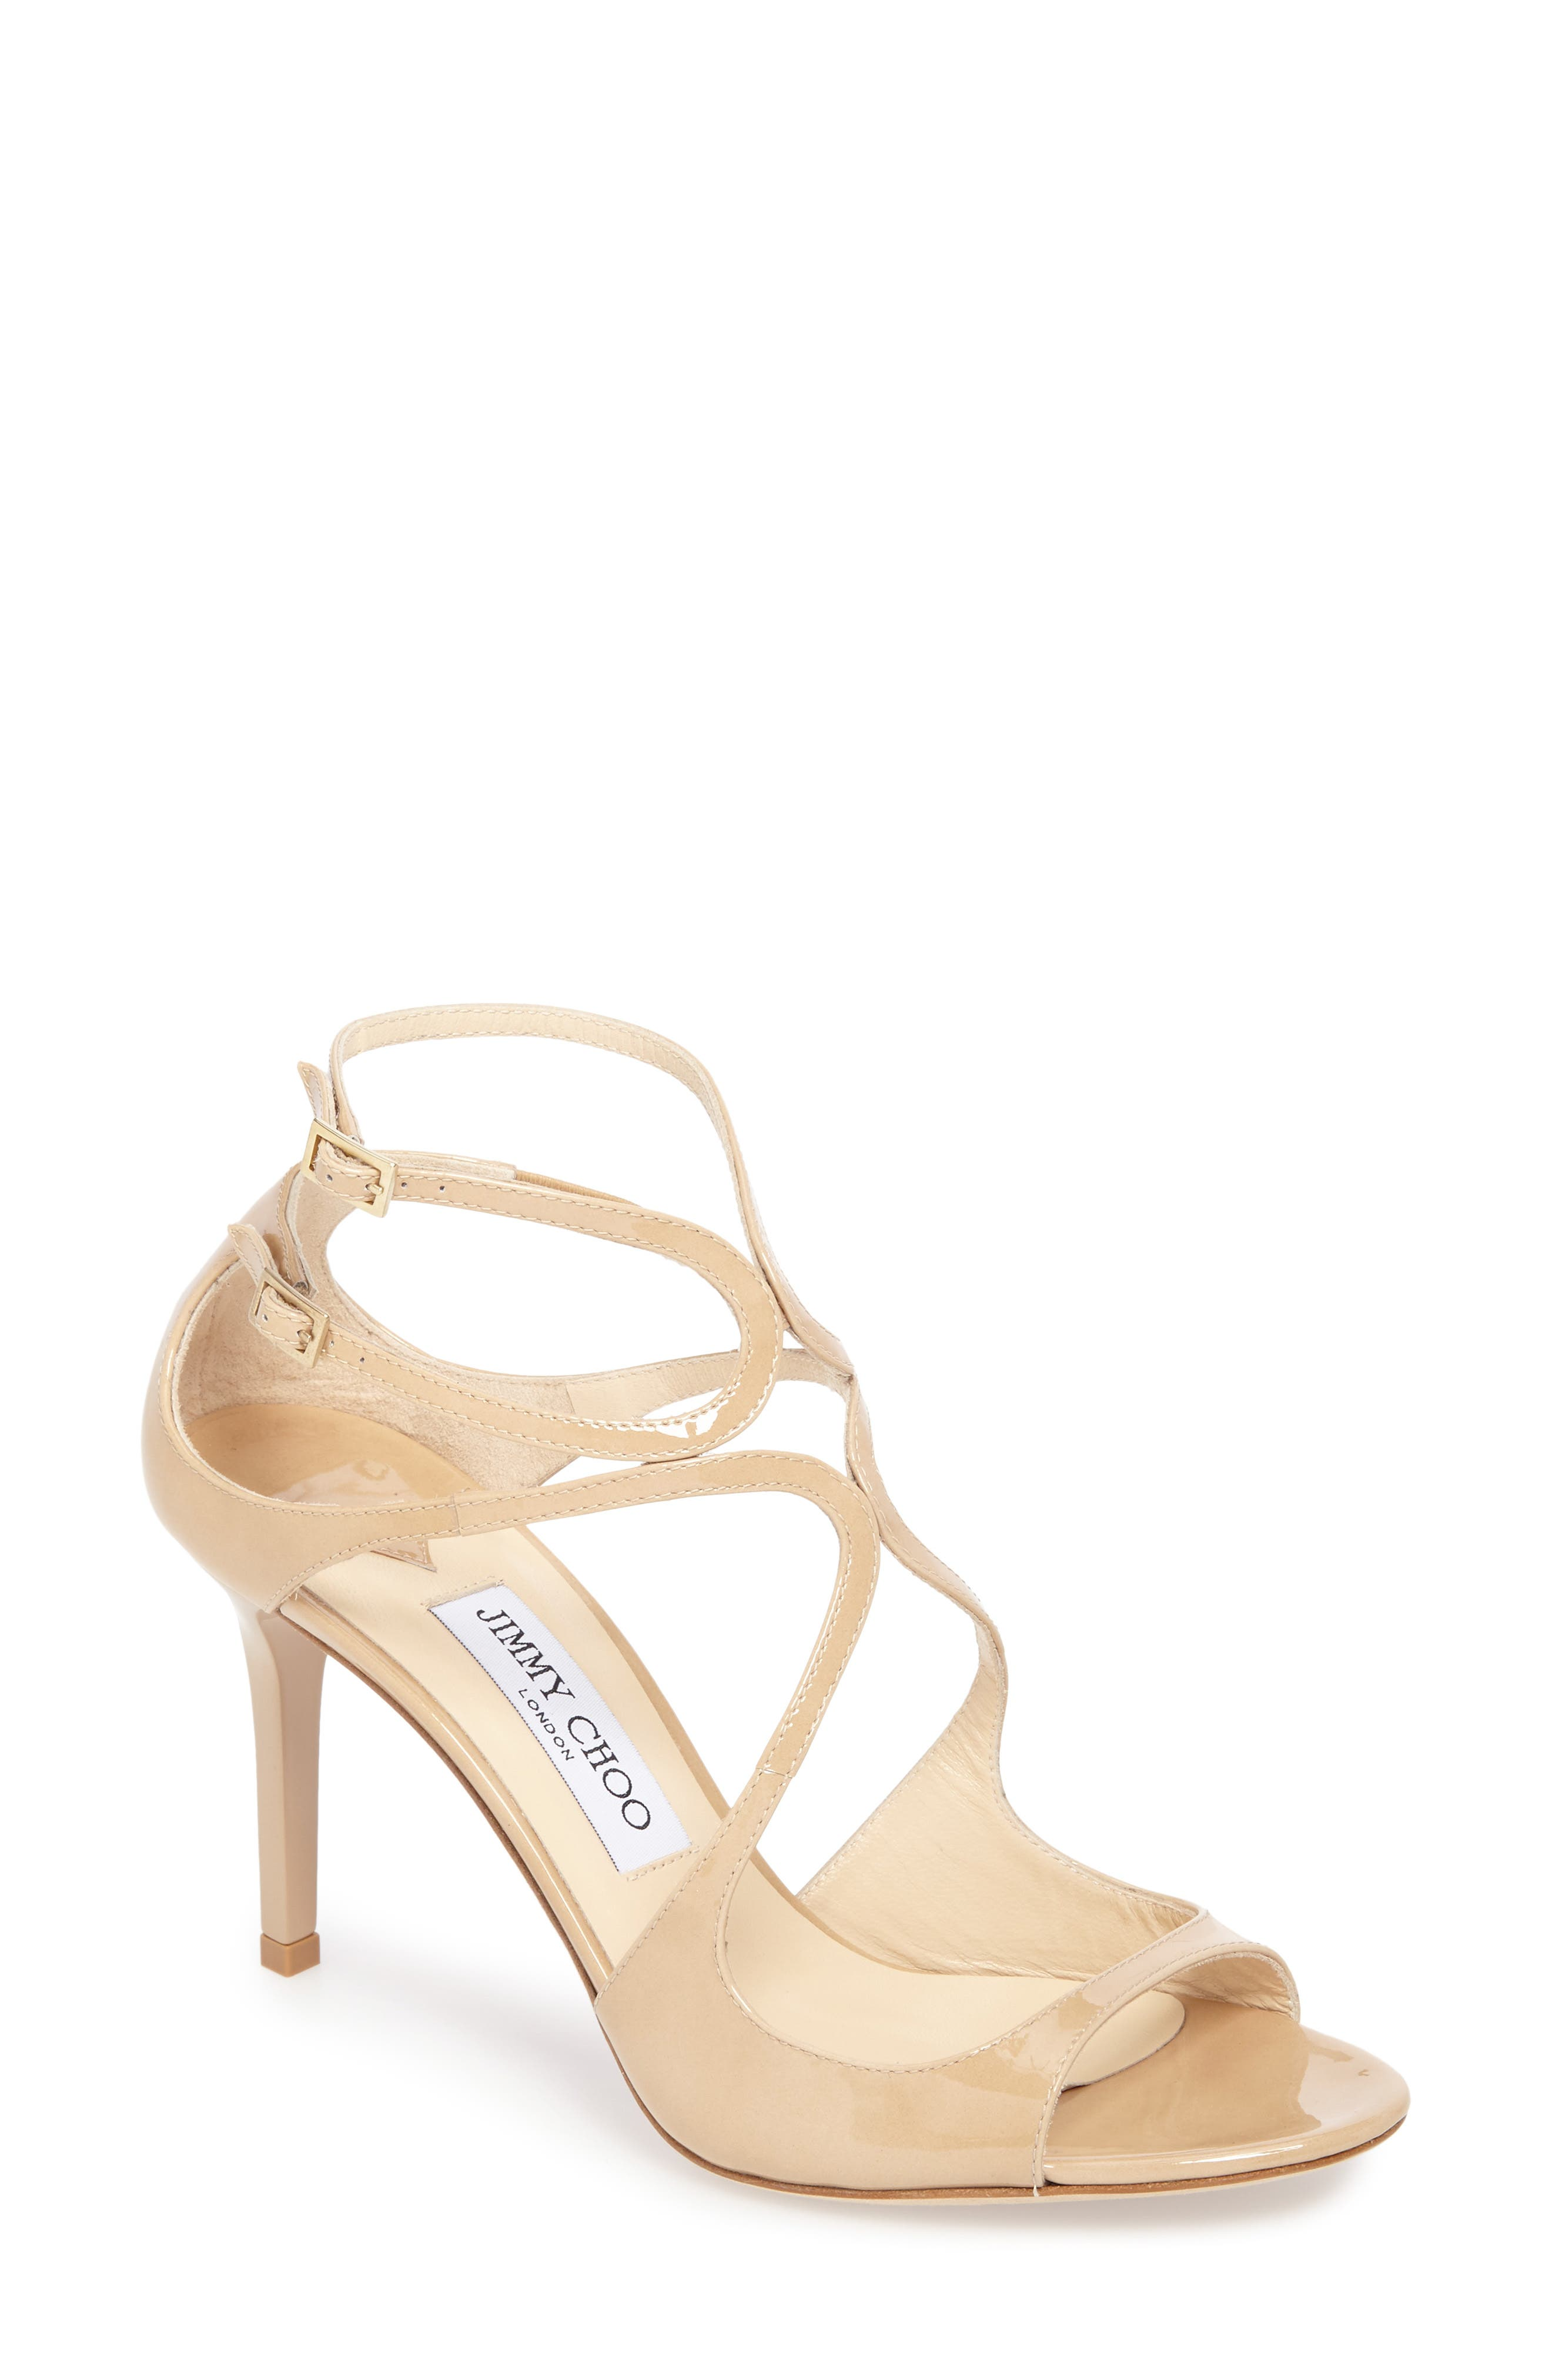 Jimmy Choo Ivette Sandal (Women)